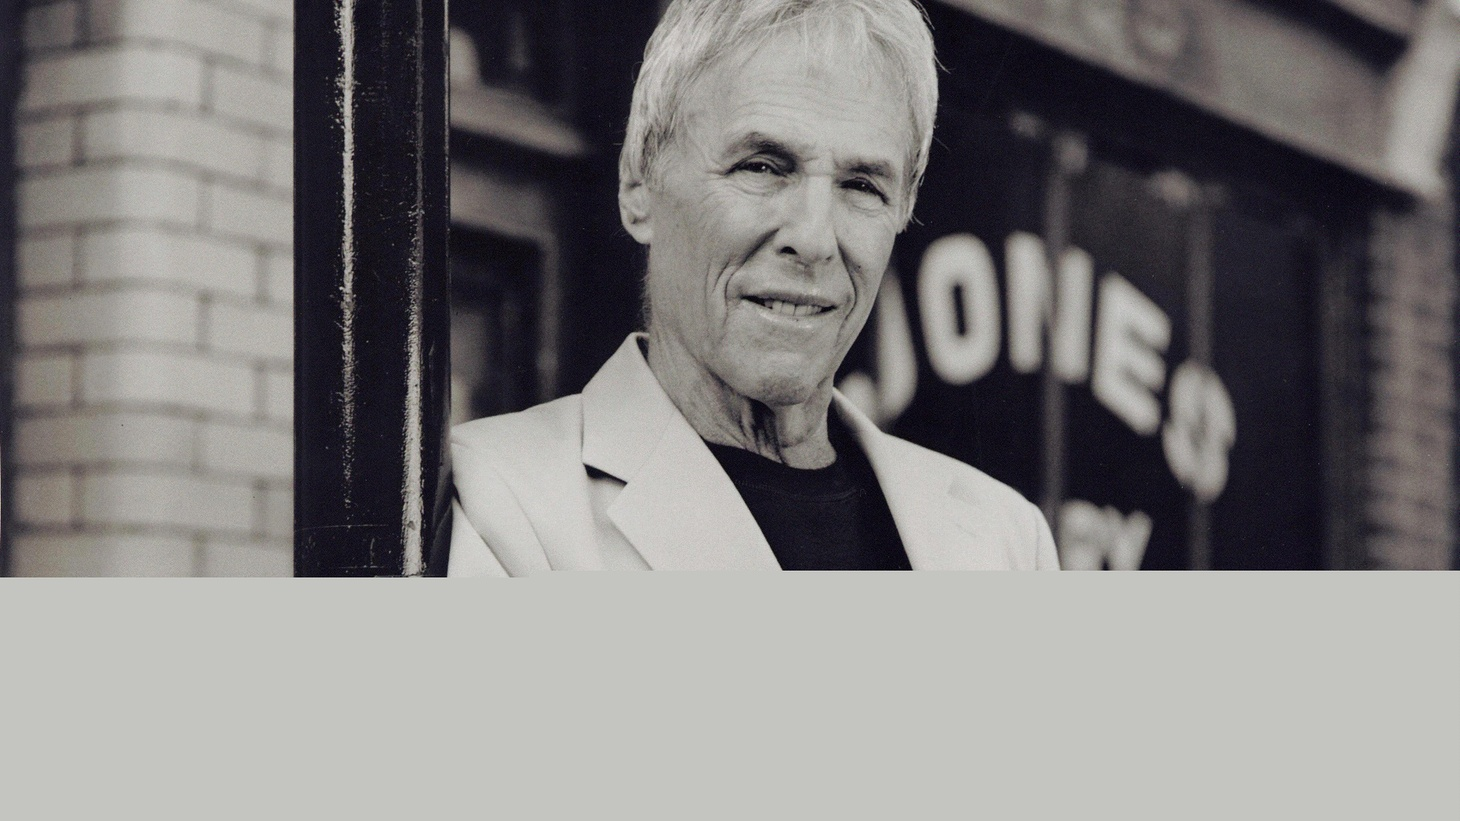 One of the most accomplished and prolific American songwriters of the 20th Century, Burt Bacharach has had over 50 songs in the top 40. He joins host Chris Douridas and gives some insight into his songwriting process on Morning Becomes Eclectic.